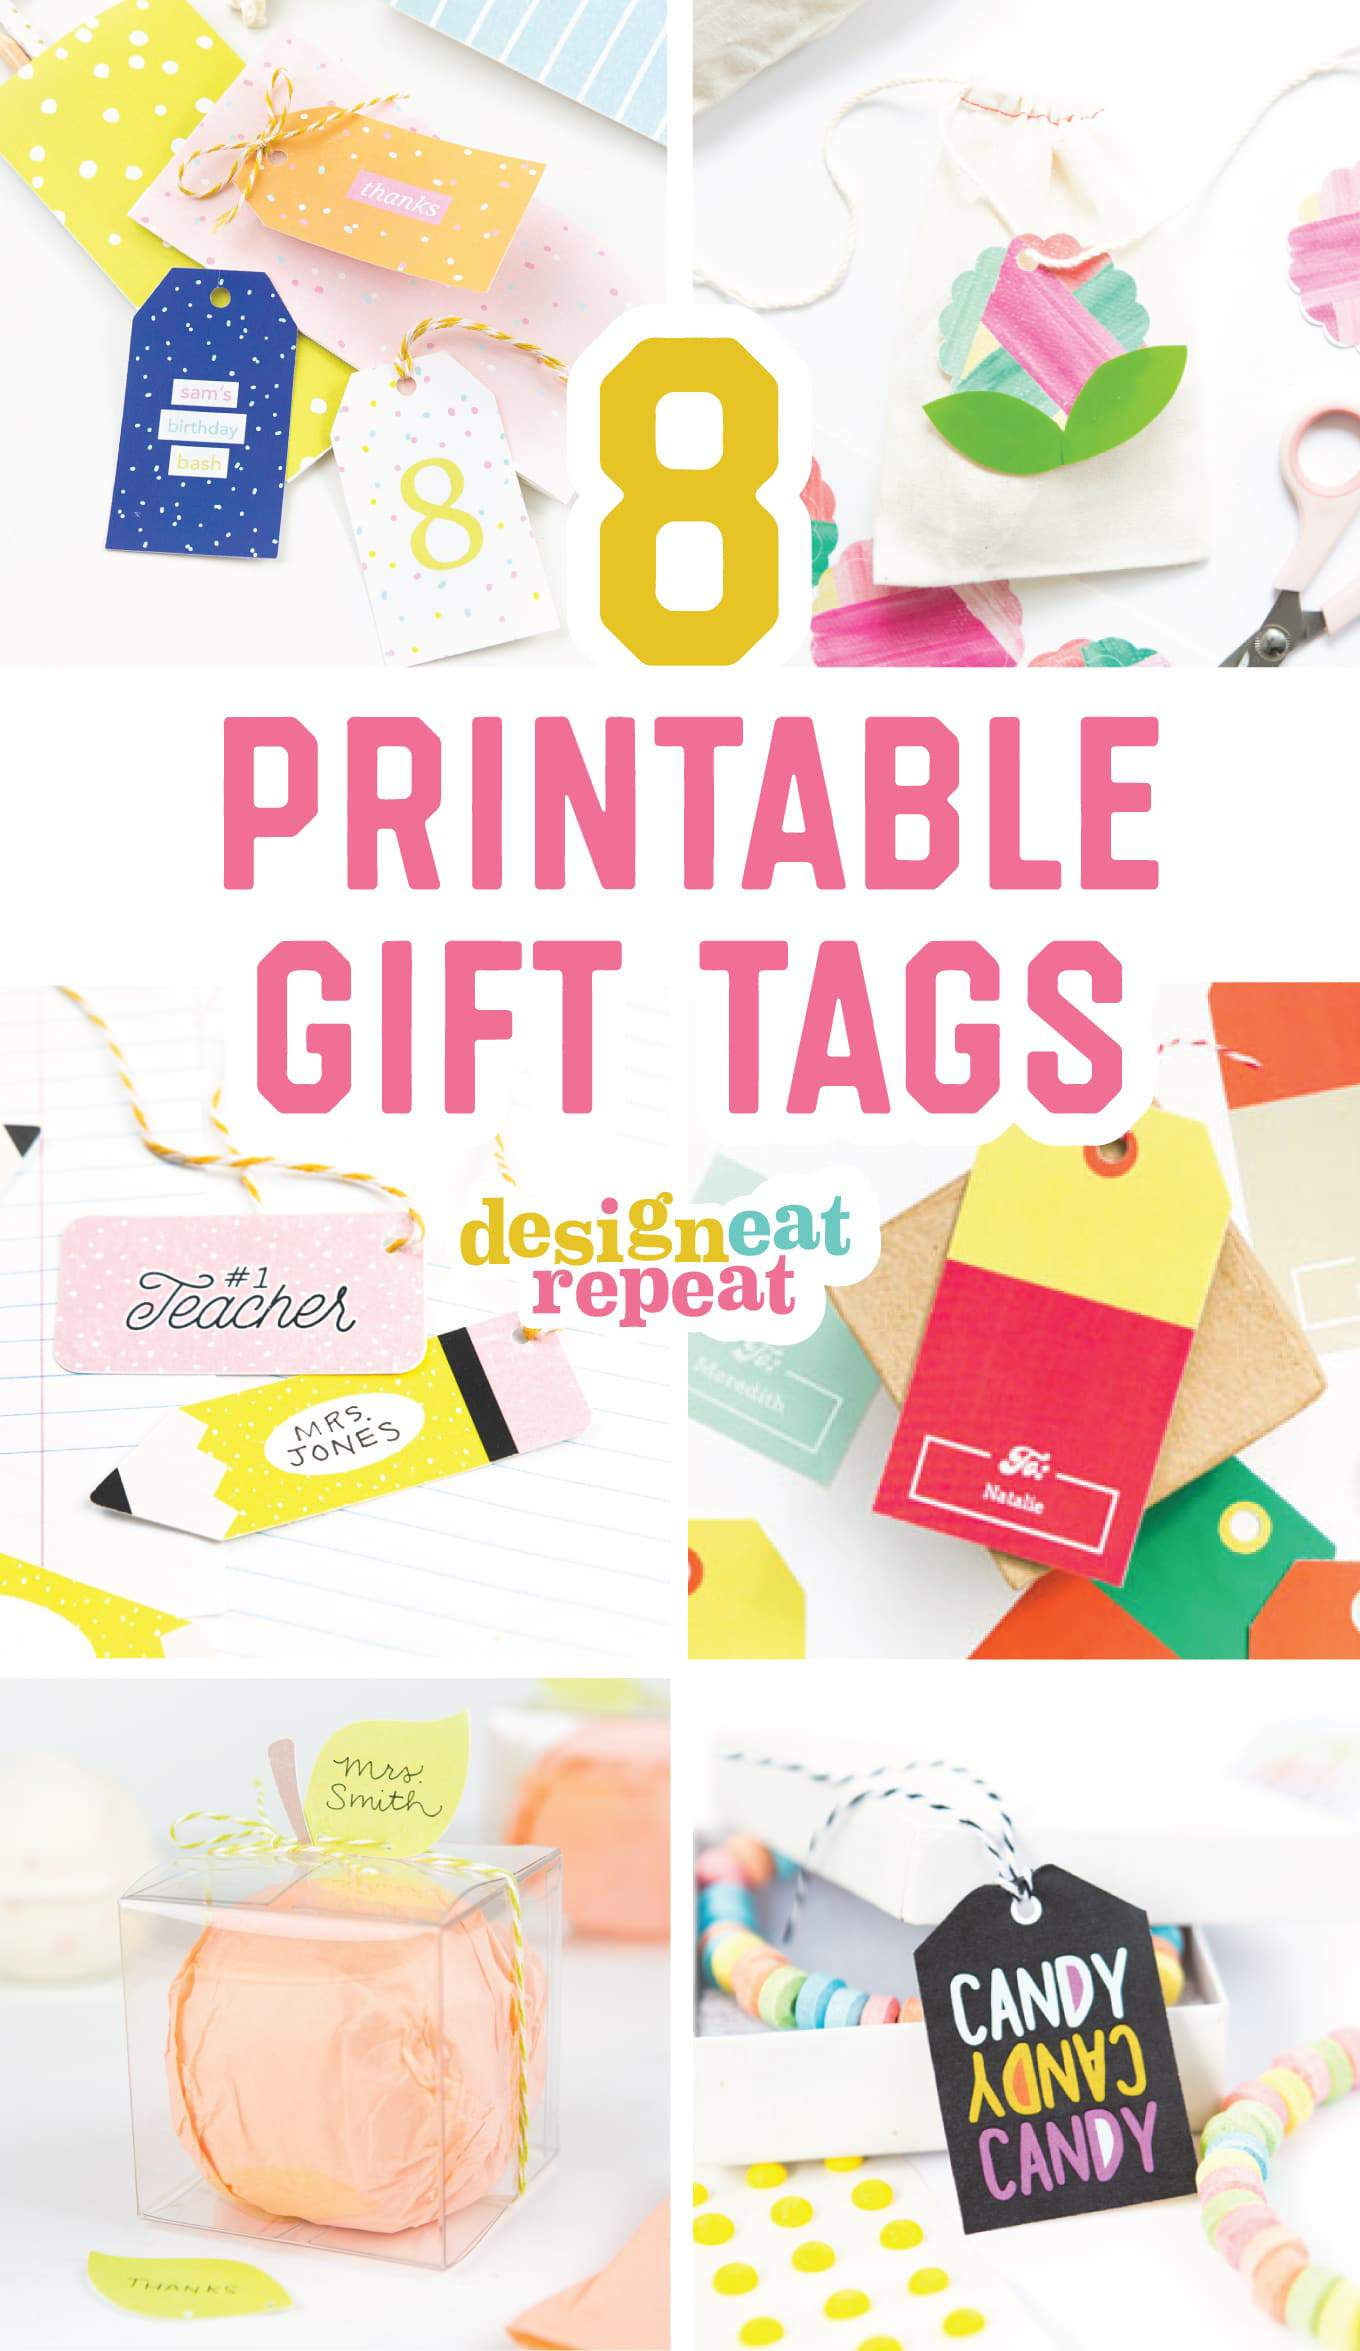 8 Colorful & Free Printable Gift Tags For Any Occasion! - Free Printable Customizable Gift Tags